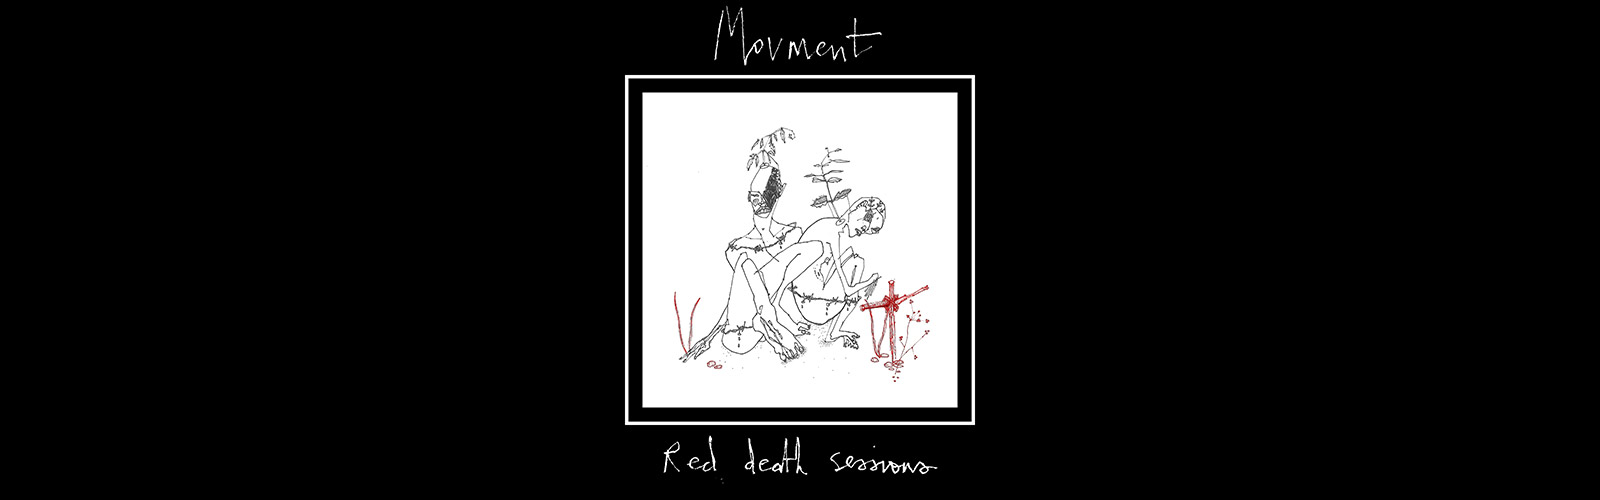 Red-Death-Sessions-EP-Sleeve-F2